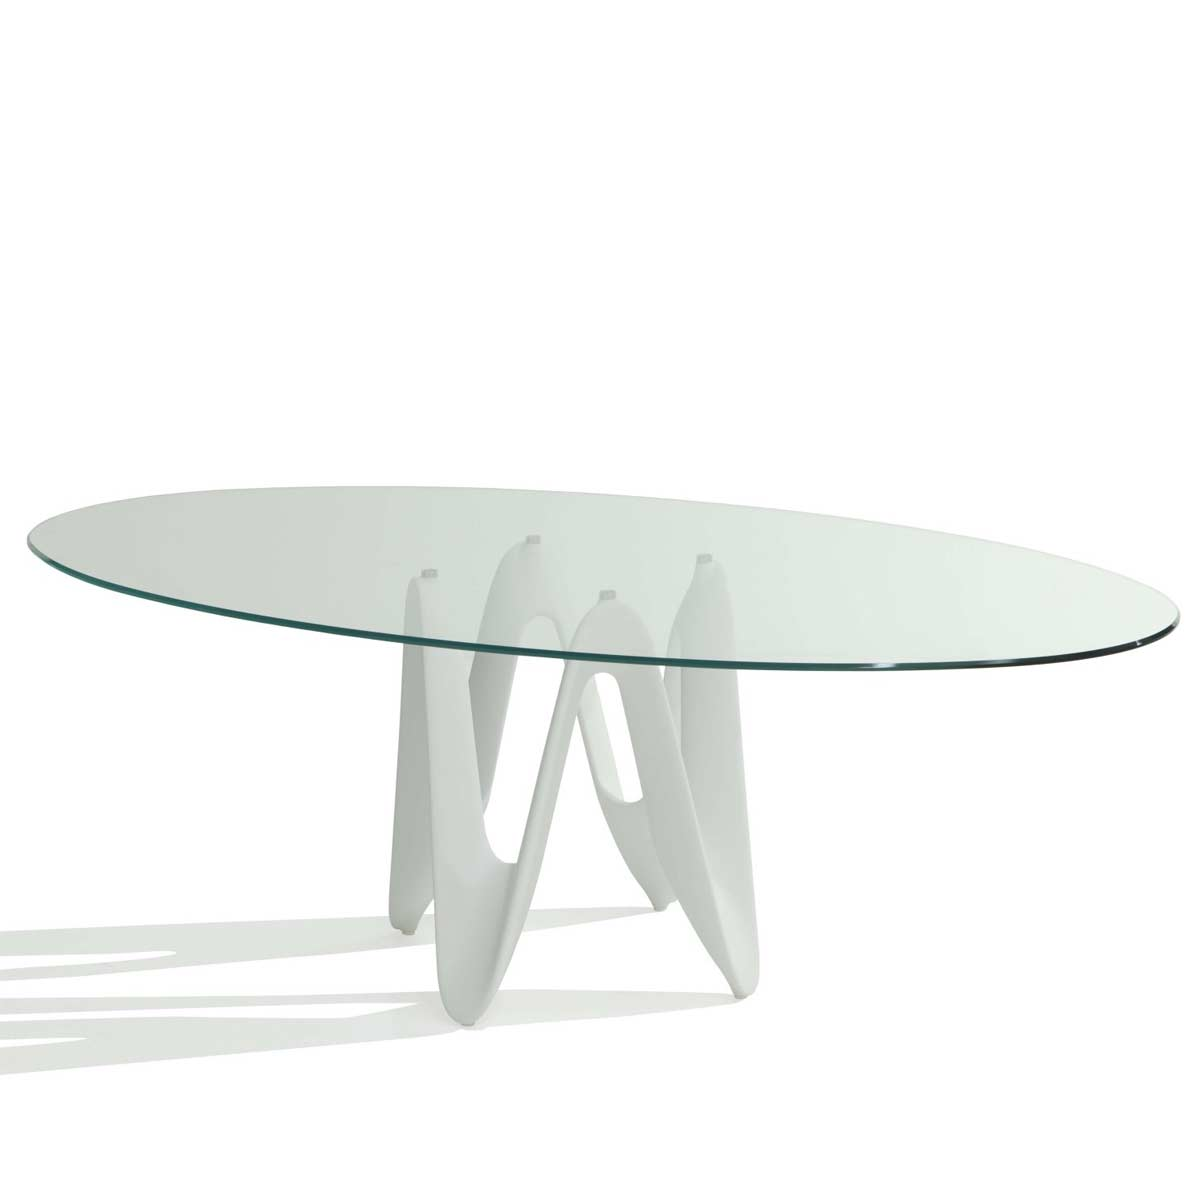 Lambda oval glass dining table klarity glass furniture for Glass furniture